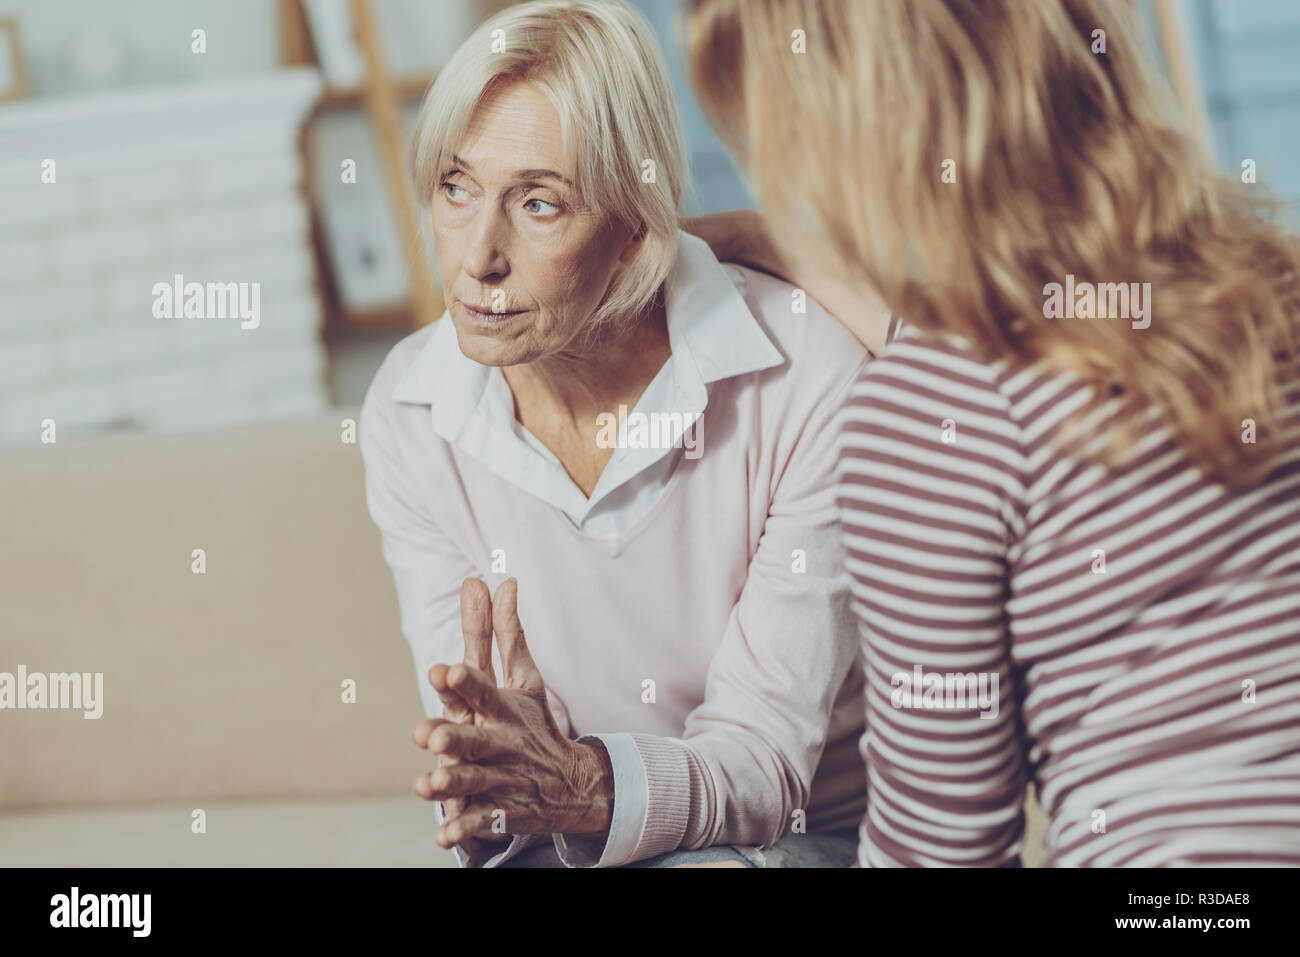 Disheartened. Concerned elderly woman sitting in bright room in front of her caring daughter while looking thoughtfully into the distance - Stock Image